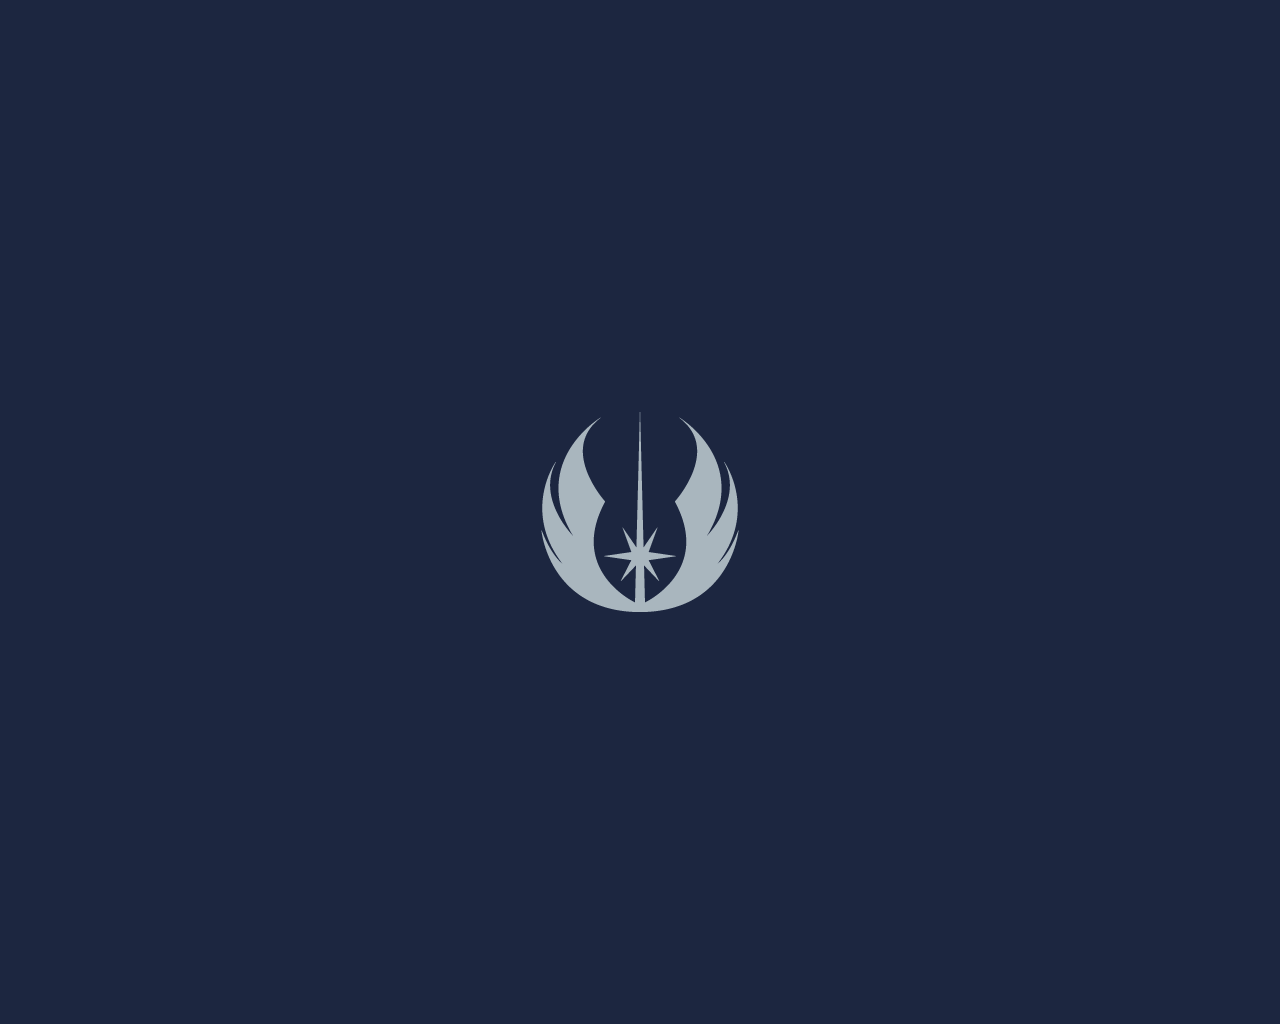 Free Download Star Wars Wallpaper Jedi Emblem By Diros Customization Wallpaper 1280x1024 For Your Desktop Mobile Tablet Explore 71 Star Wars Logo Wallpaper Free Hd Star Wars Wallpapers Jedi